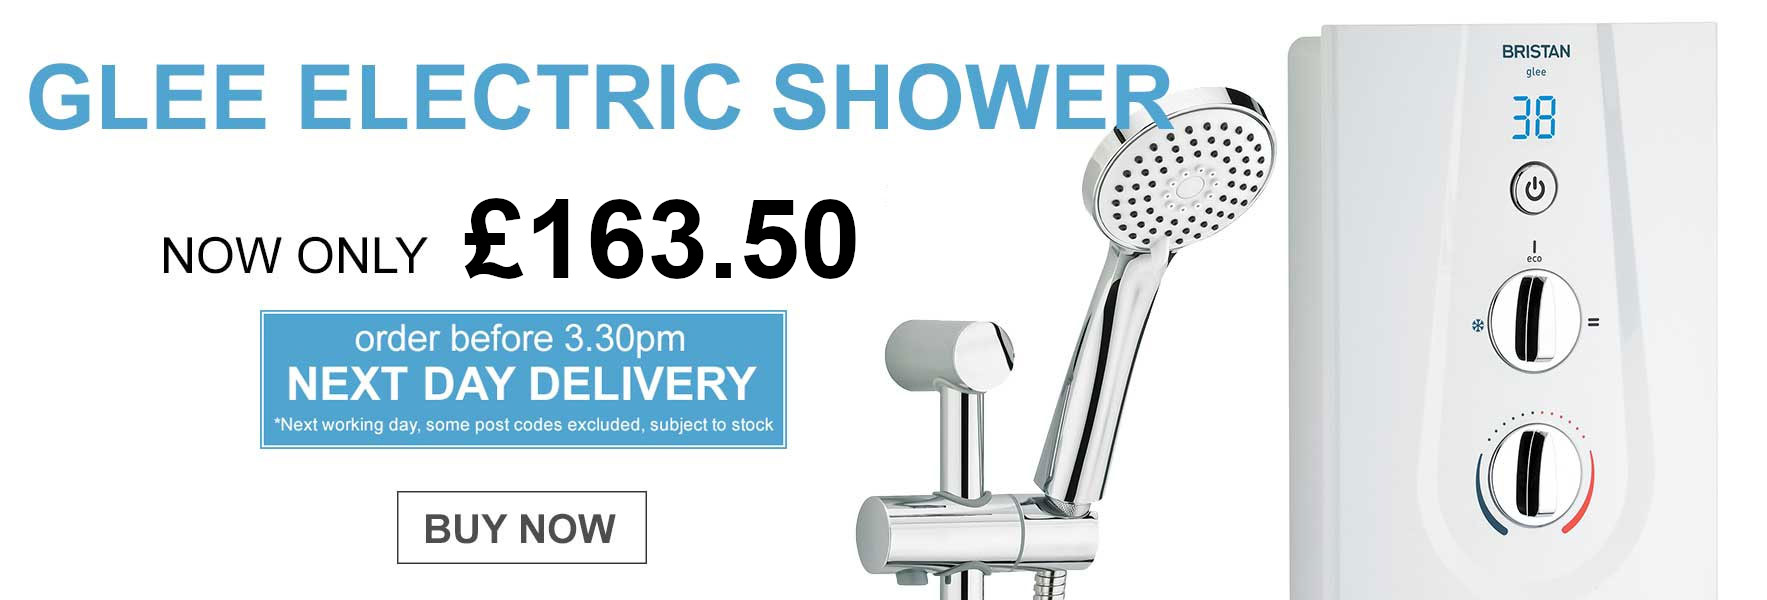 Replacement New Team Electric Showers